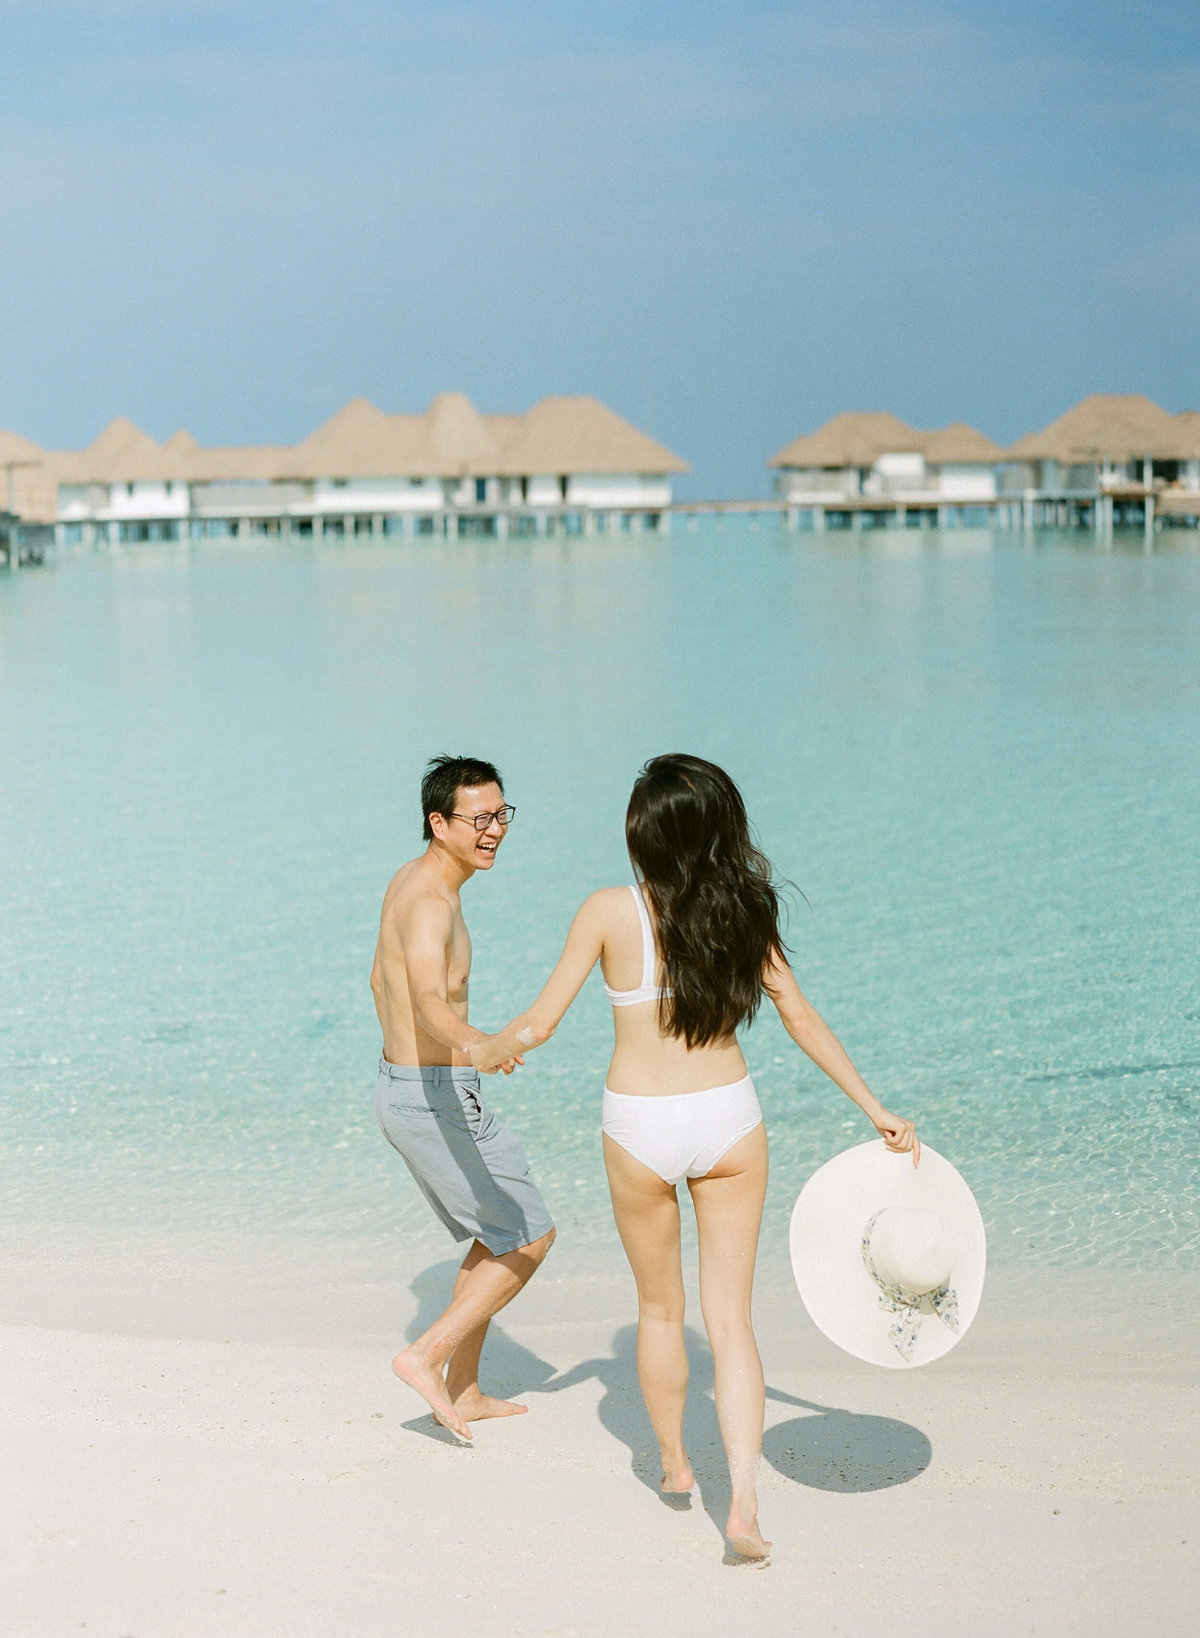 21-KTMerry-destinationwedding-beach-photos-Maldives